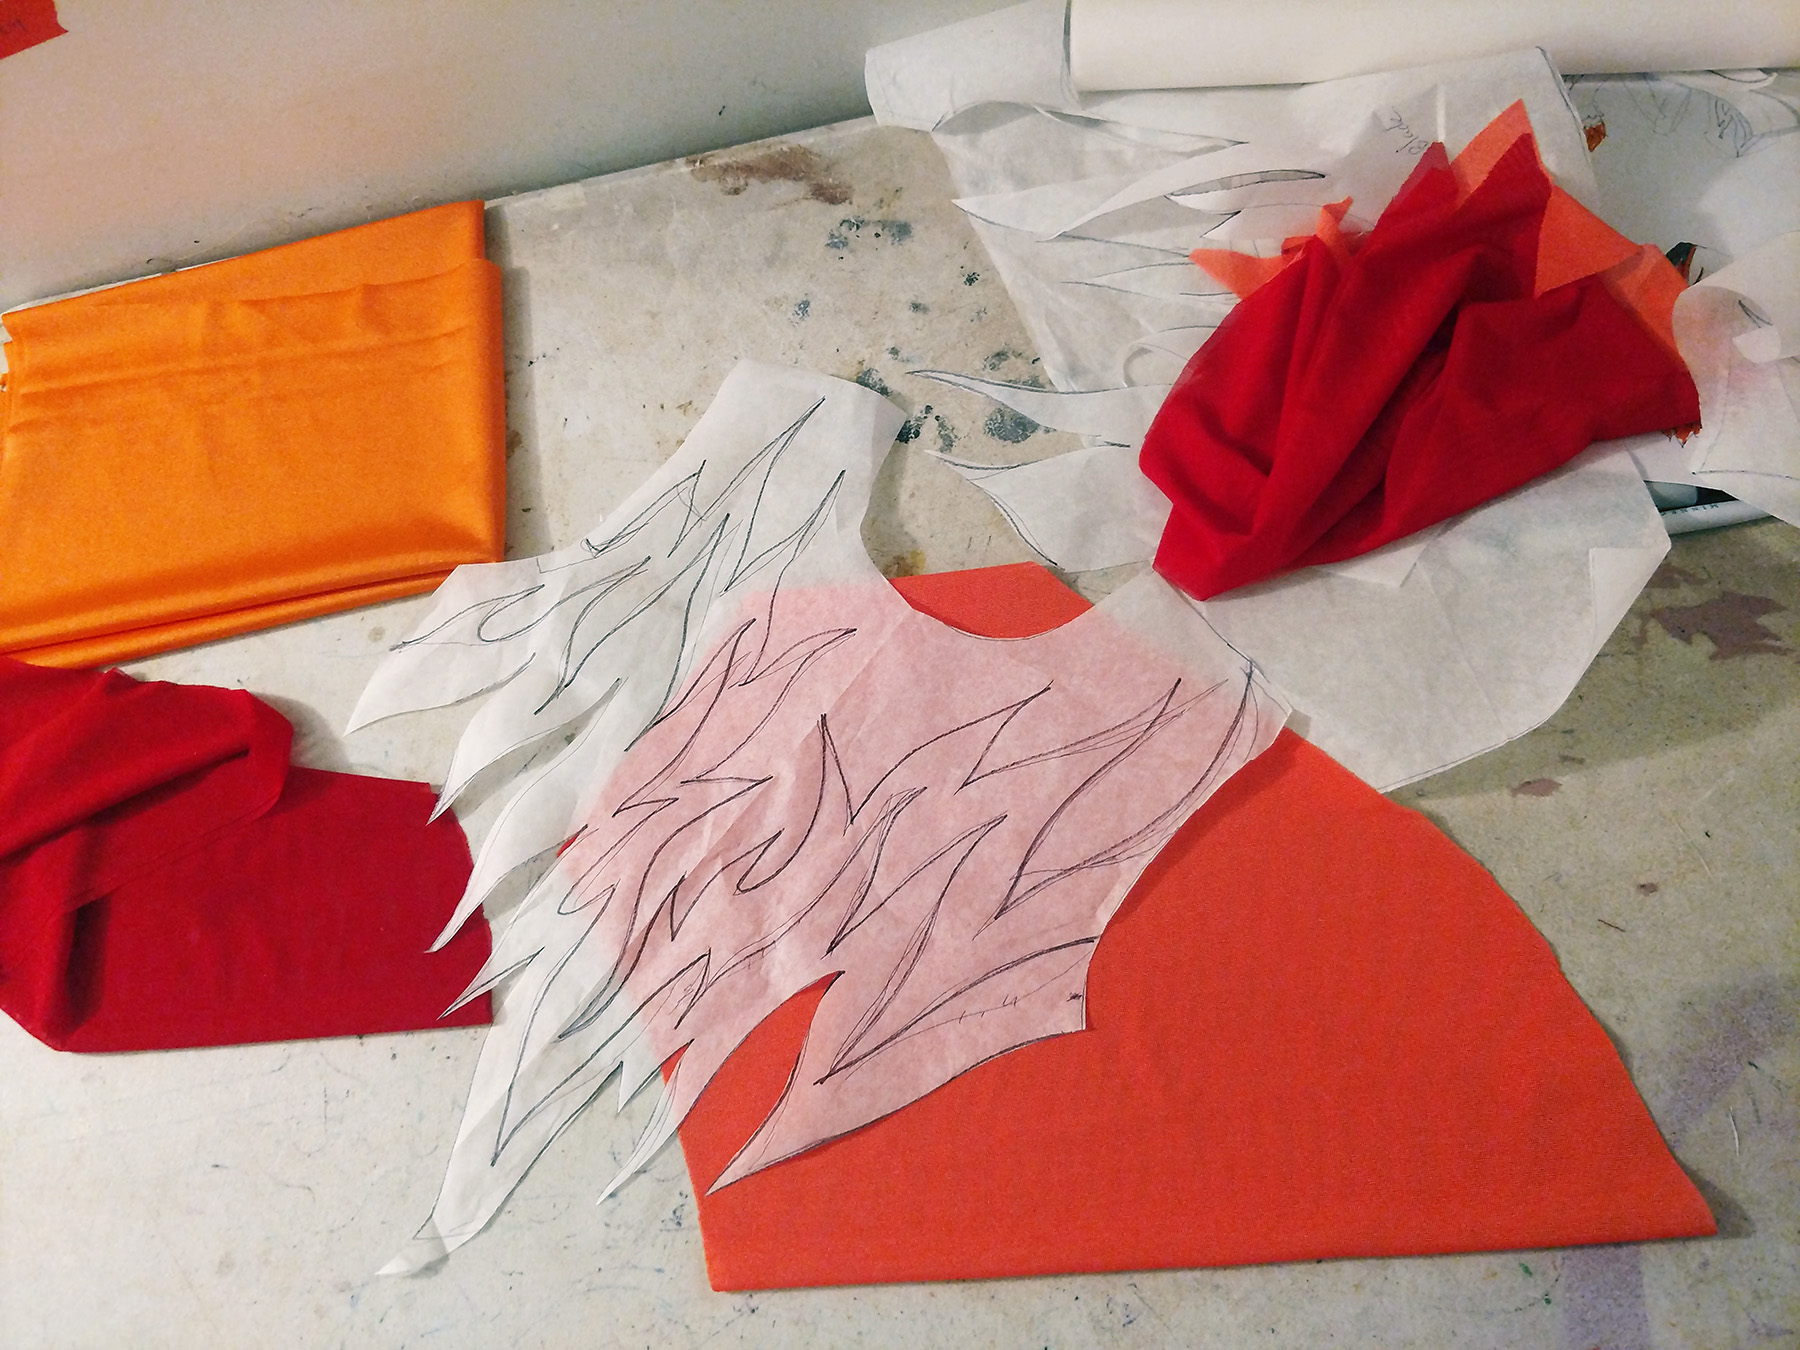 A pattern piece with a flames design is shown resting on top of some orange spandex.